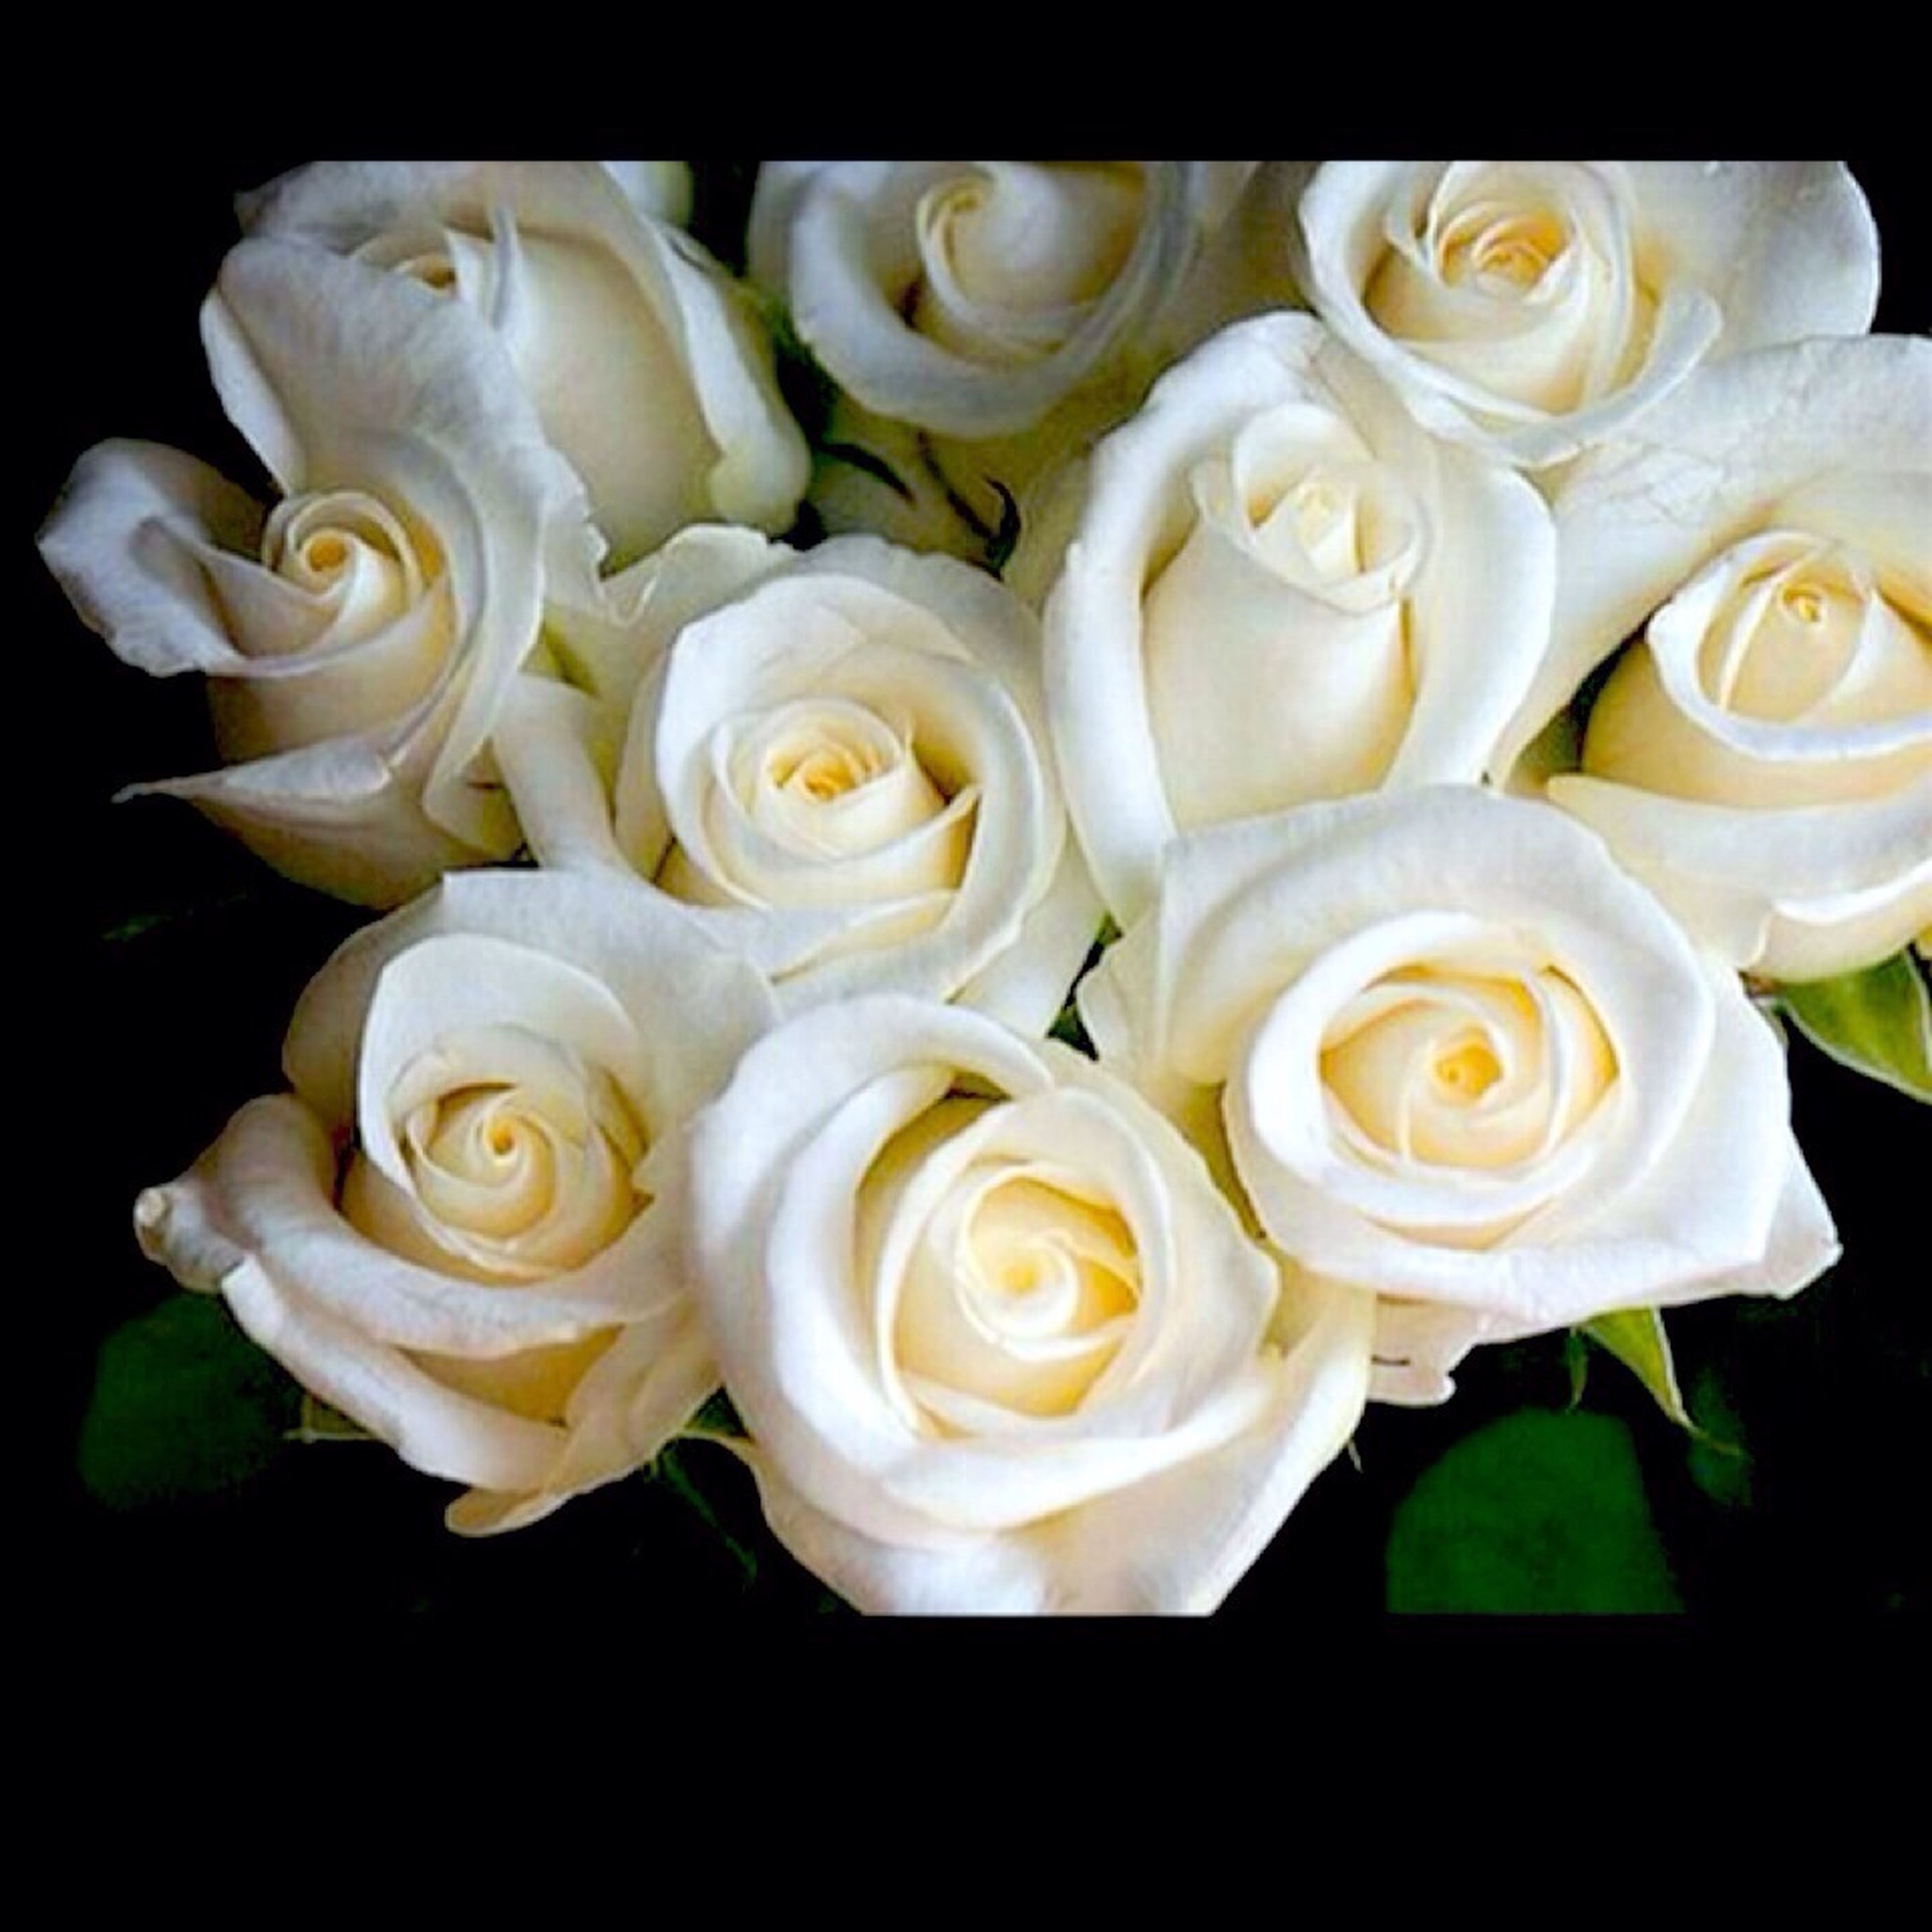 flower, freshness, petal, fragility, flower head, rose - flower, beauty in nature, rose, white color, close-up, growth, nature, indoors, bunch of flowers, high angle view, blossom, blooming, studio shot, bouquet, no people